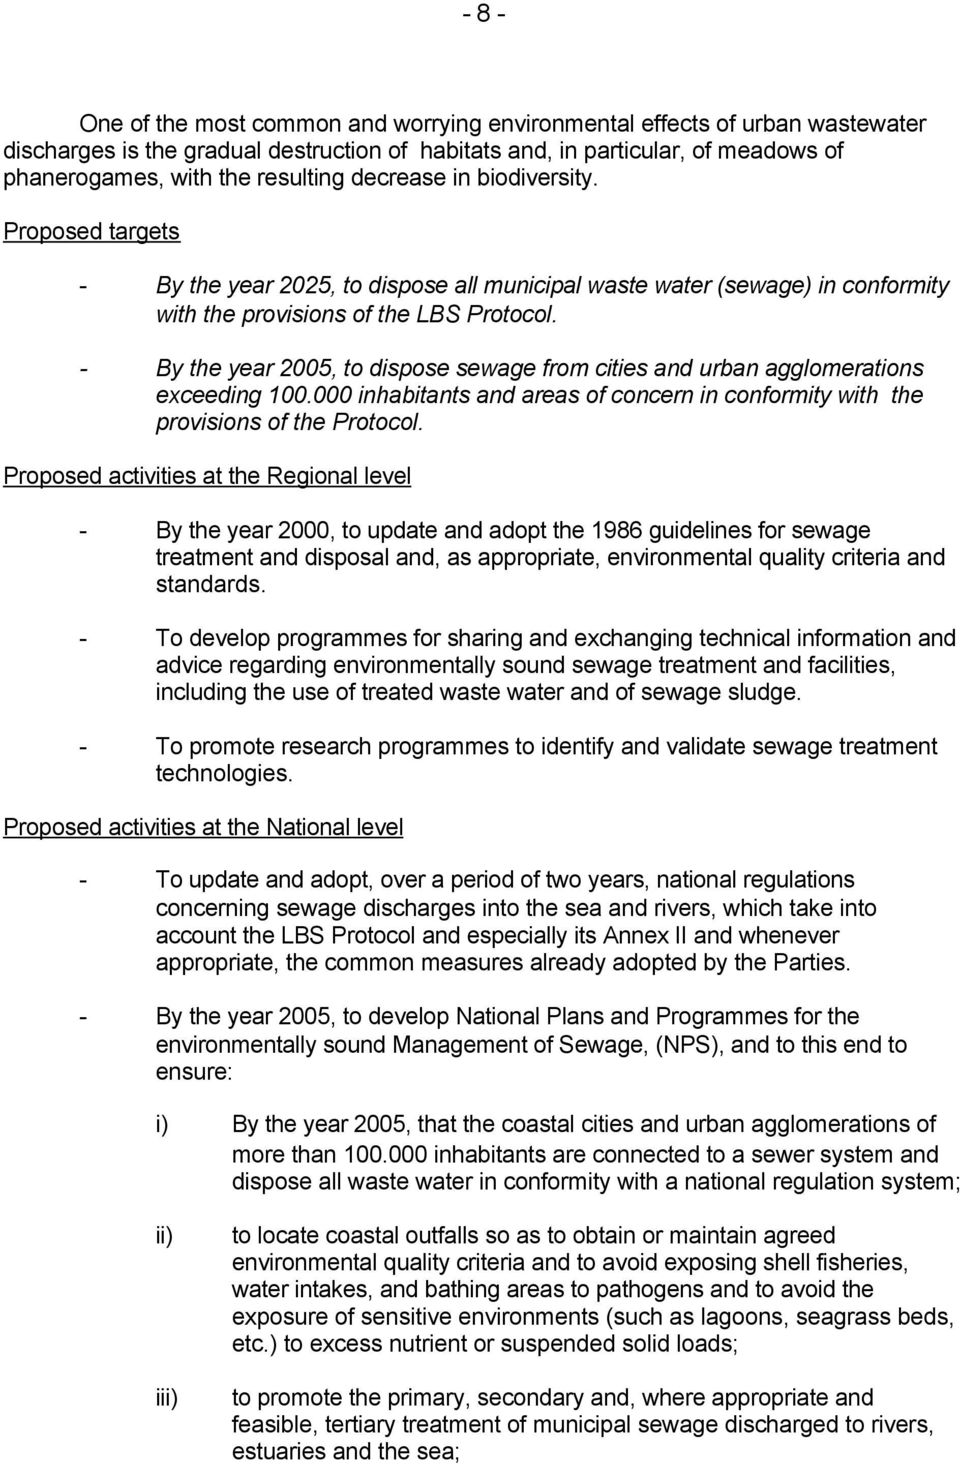 - By the year 2005, to dispose sewage from cities and urban agglomerations exceeding 100.000 inhabitants and areas of concern in conformity with the provisions of the Protocol.